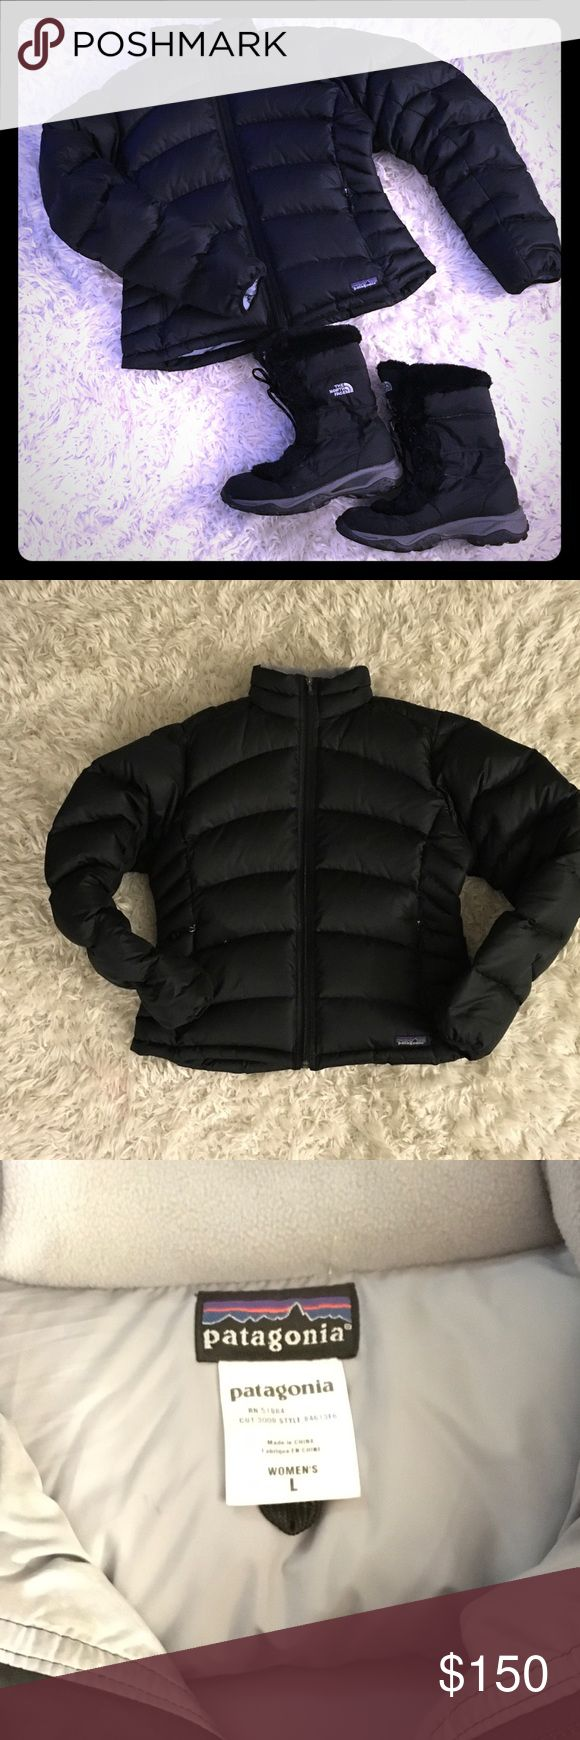 💥1 Day Sale💥 Patagonia Down Filled Puffer Coat This Patagonia Puffer Coat is in excellent condition!  It is perfect for cold weather!  What a great piece for any winter activity or for running errands?  85% down -filled, very warm and cozy! Patagonia Jackets & Coats Puffers